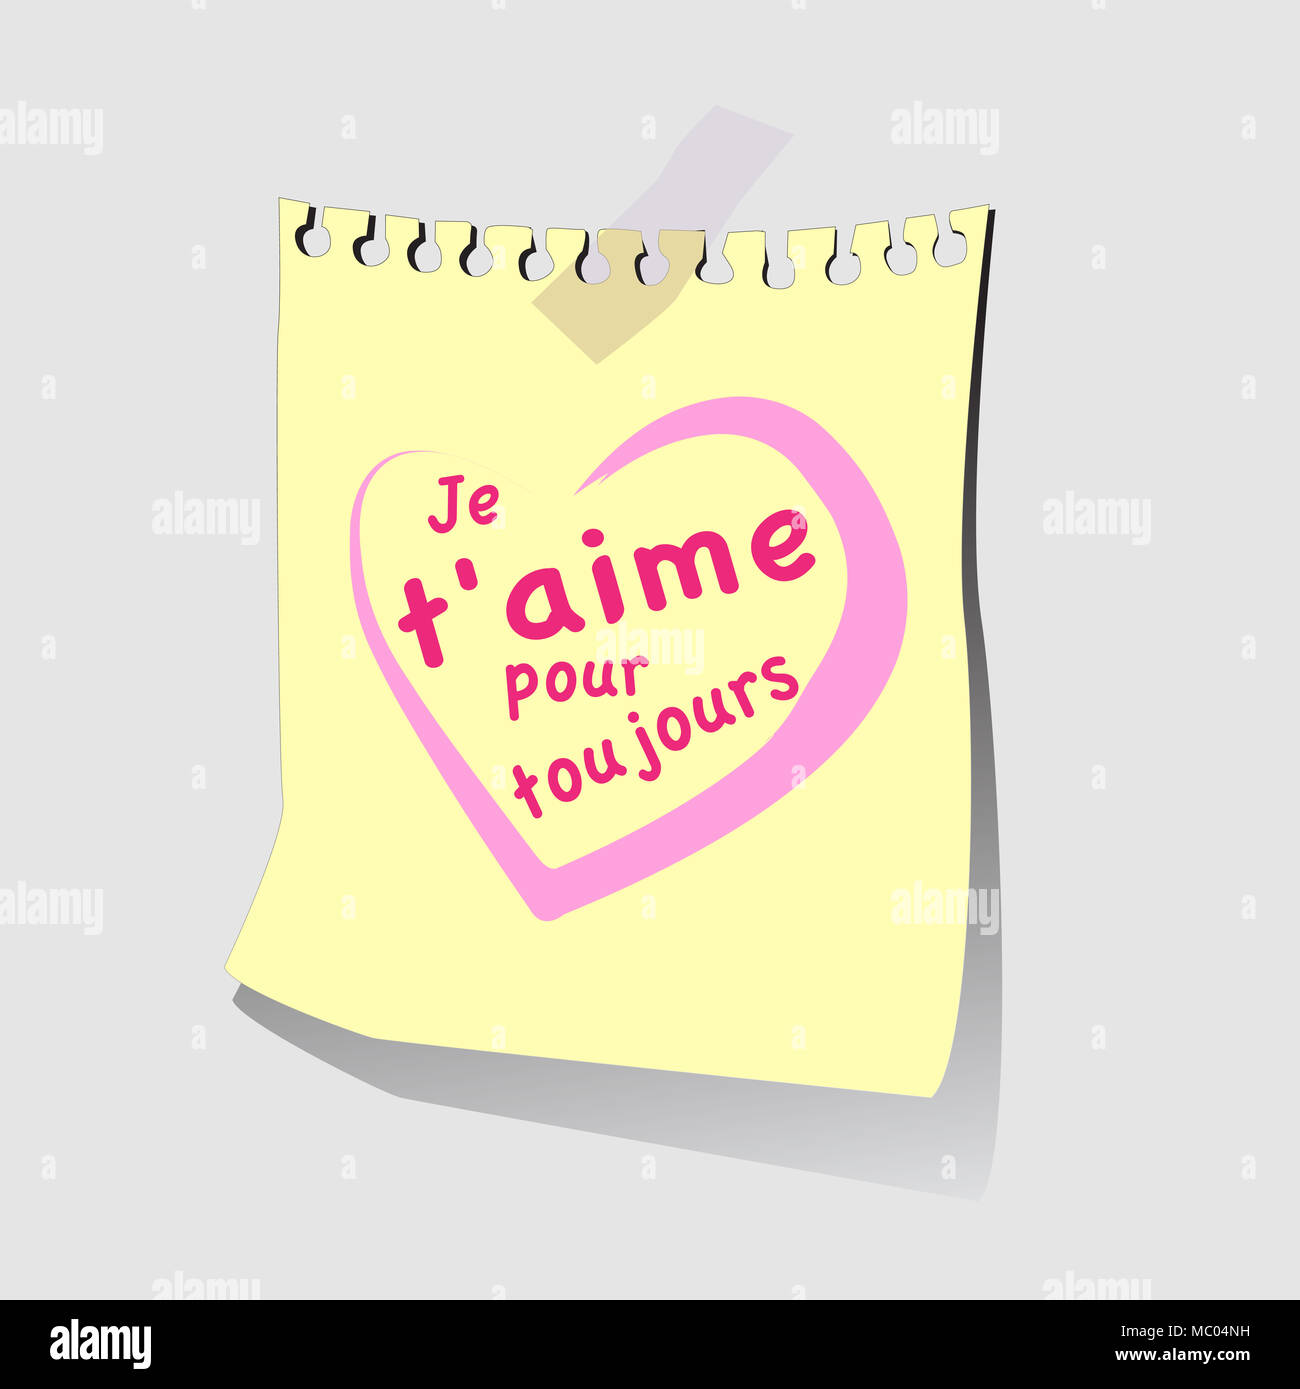 French Words Je Taime Pour Toujours And Traslate To English Is Meaning I Love You Forever Couple Lover Is Writes Wording On Paper Note And Stick It